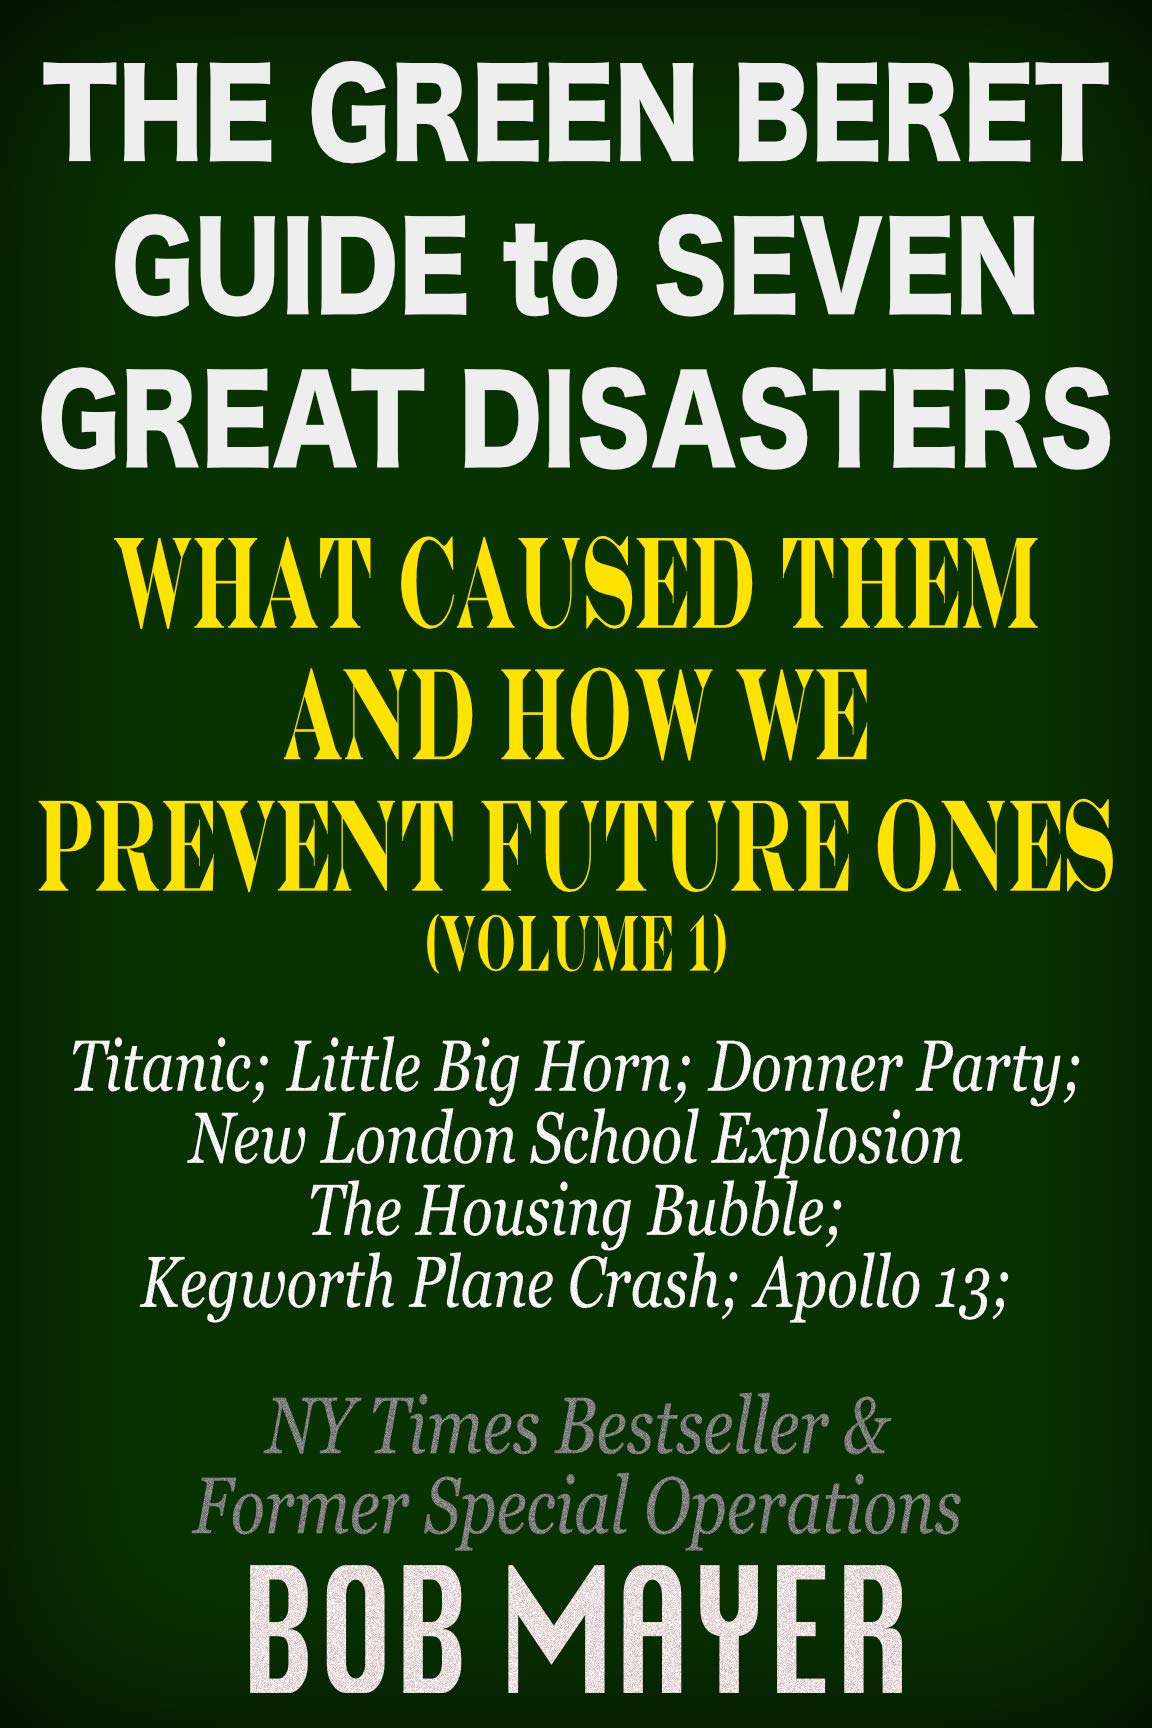 The Green Beret Guide to Seven Great Disasters (I): What Caused Them and How We Prevent Future Ones